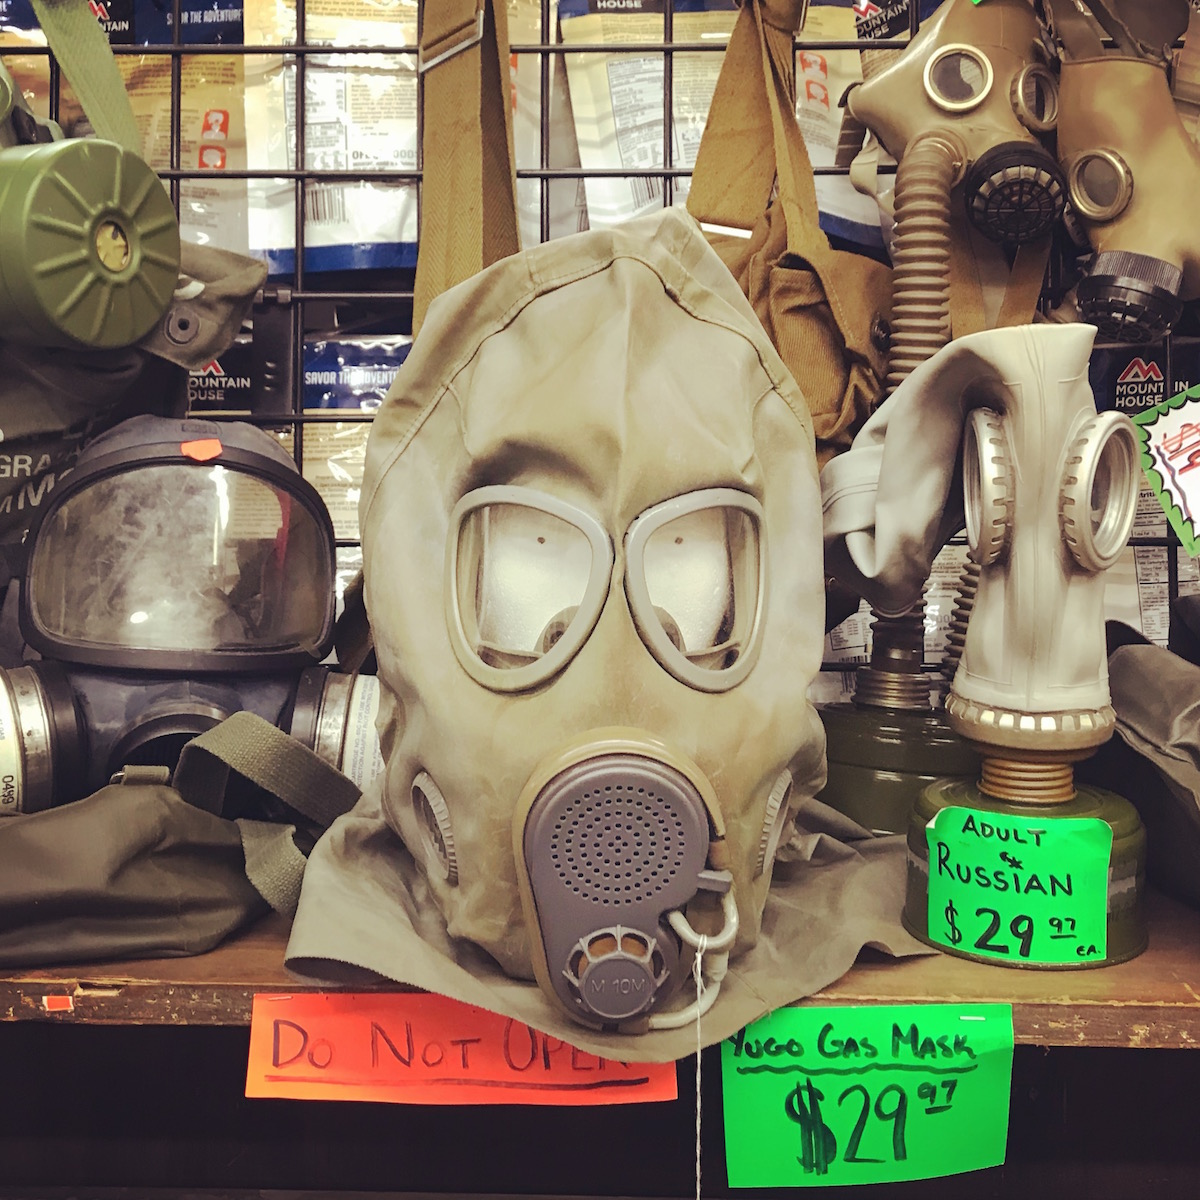 Boise army Navy - On the hunt for MREs, Joel and LD find the wool pant, mining gear, and lucha libre mask warehouse they didn't know they were looking for.